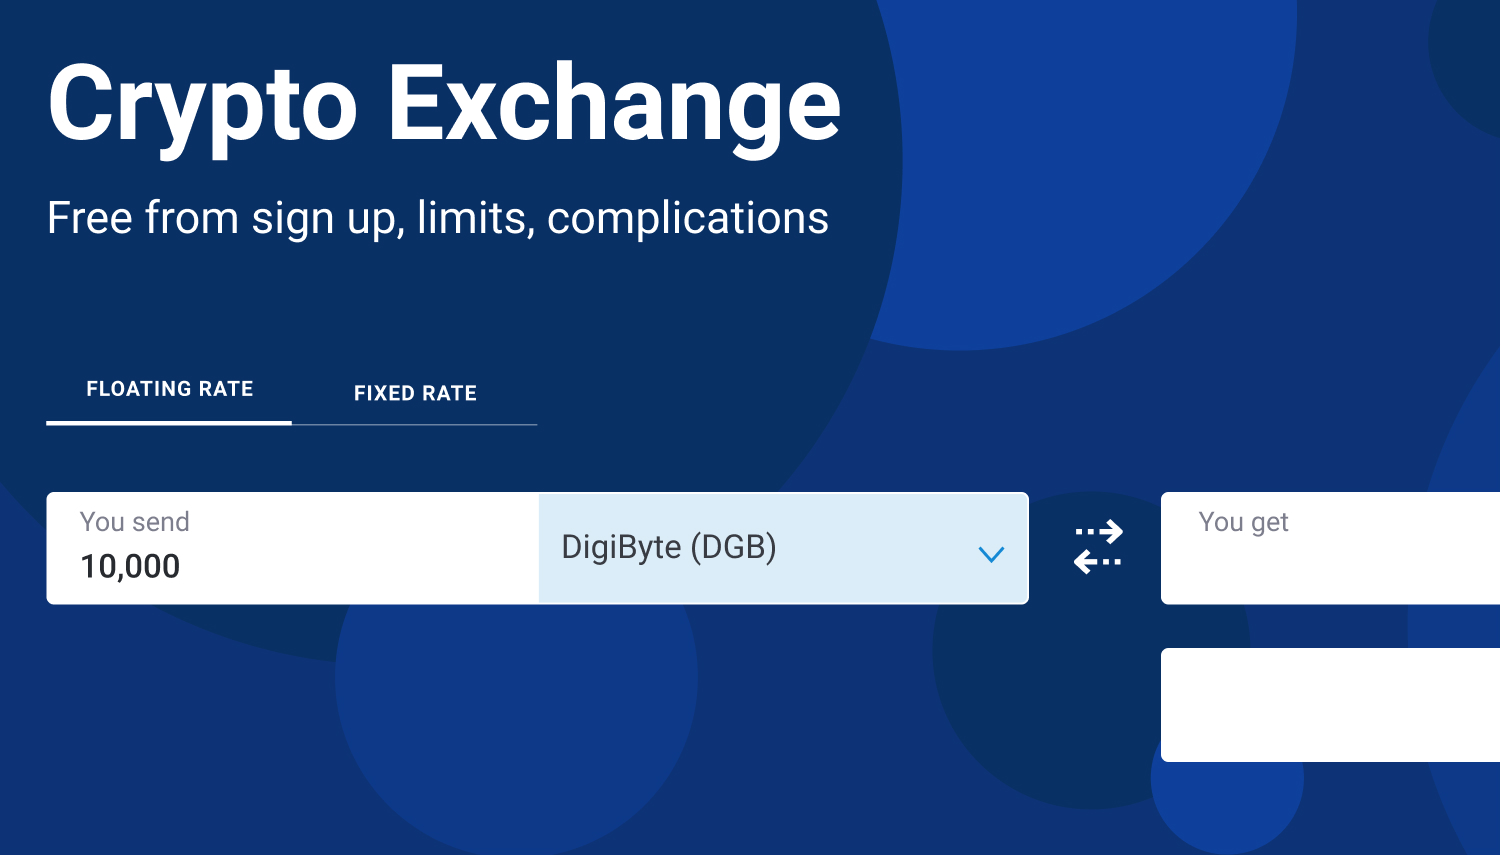 enter the amount of DigiByte to exchange